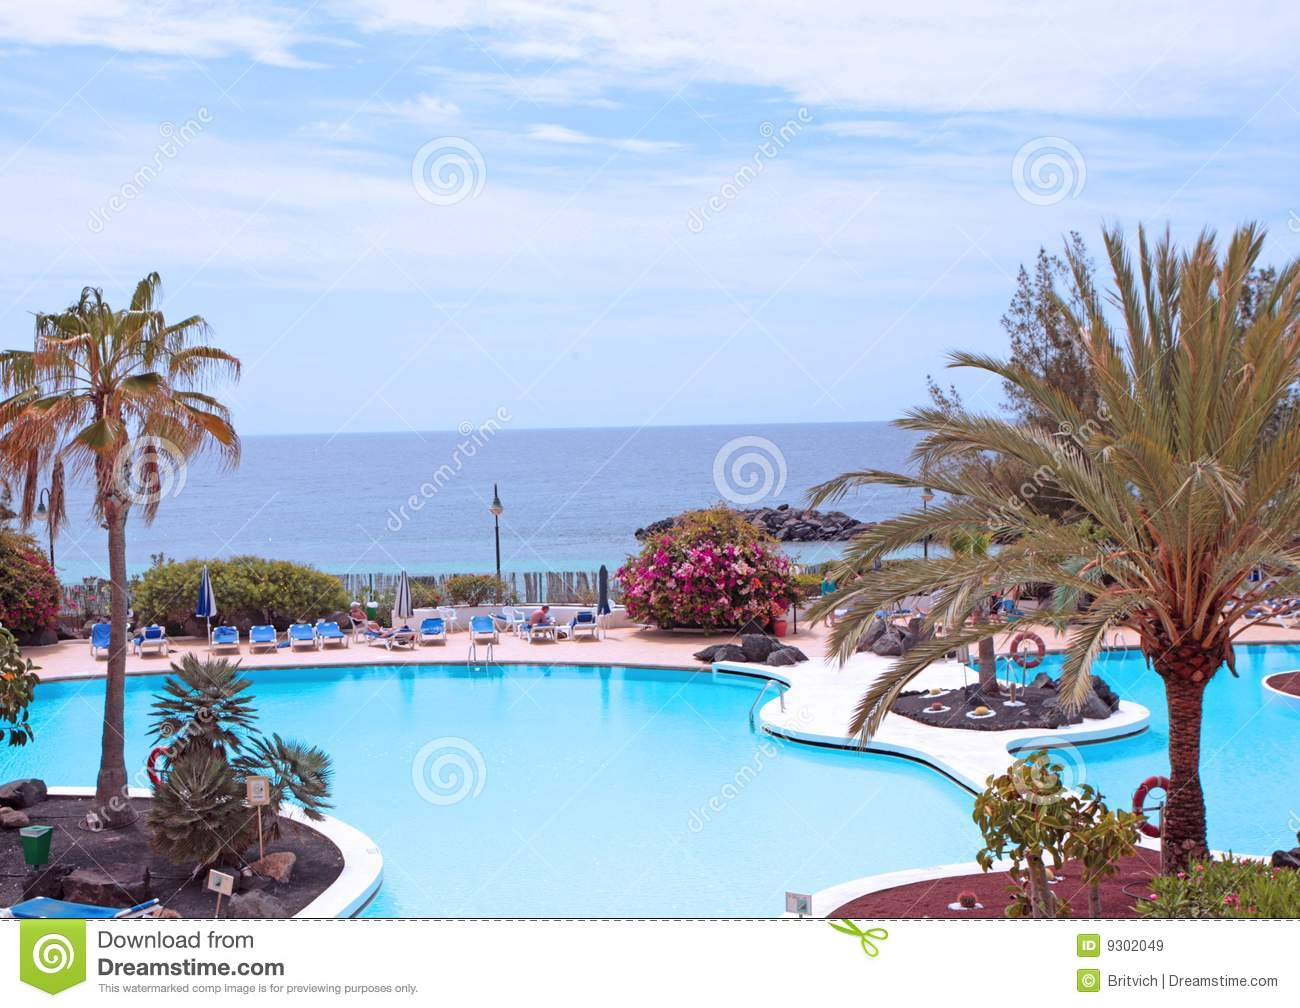 Swimming pool area royalty free stock images image 9302049 for Swimming pool area